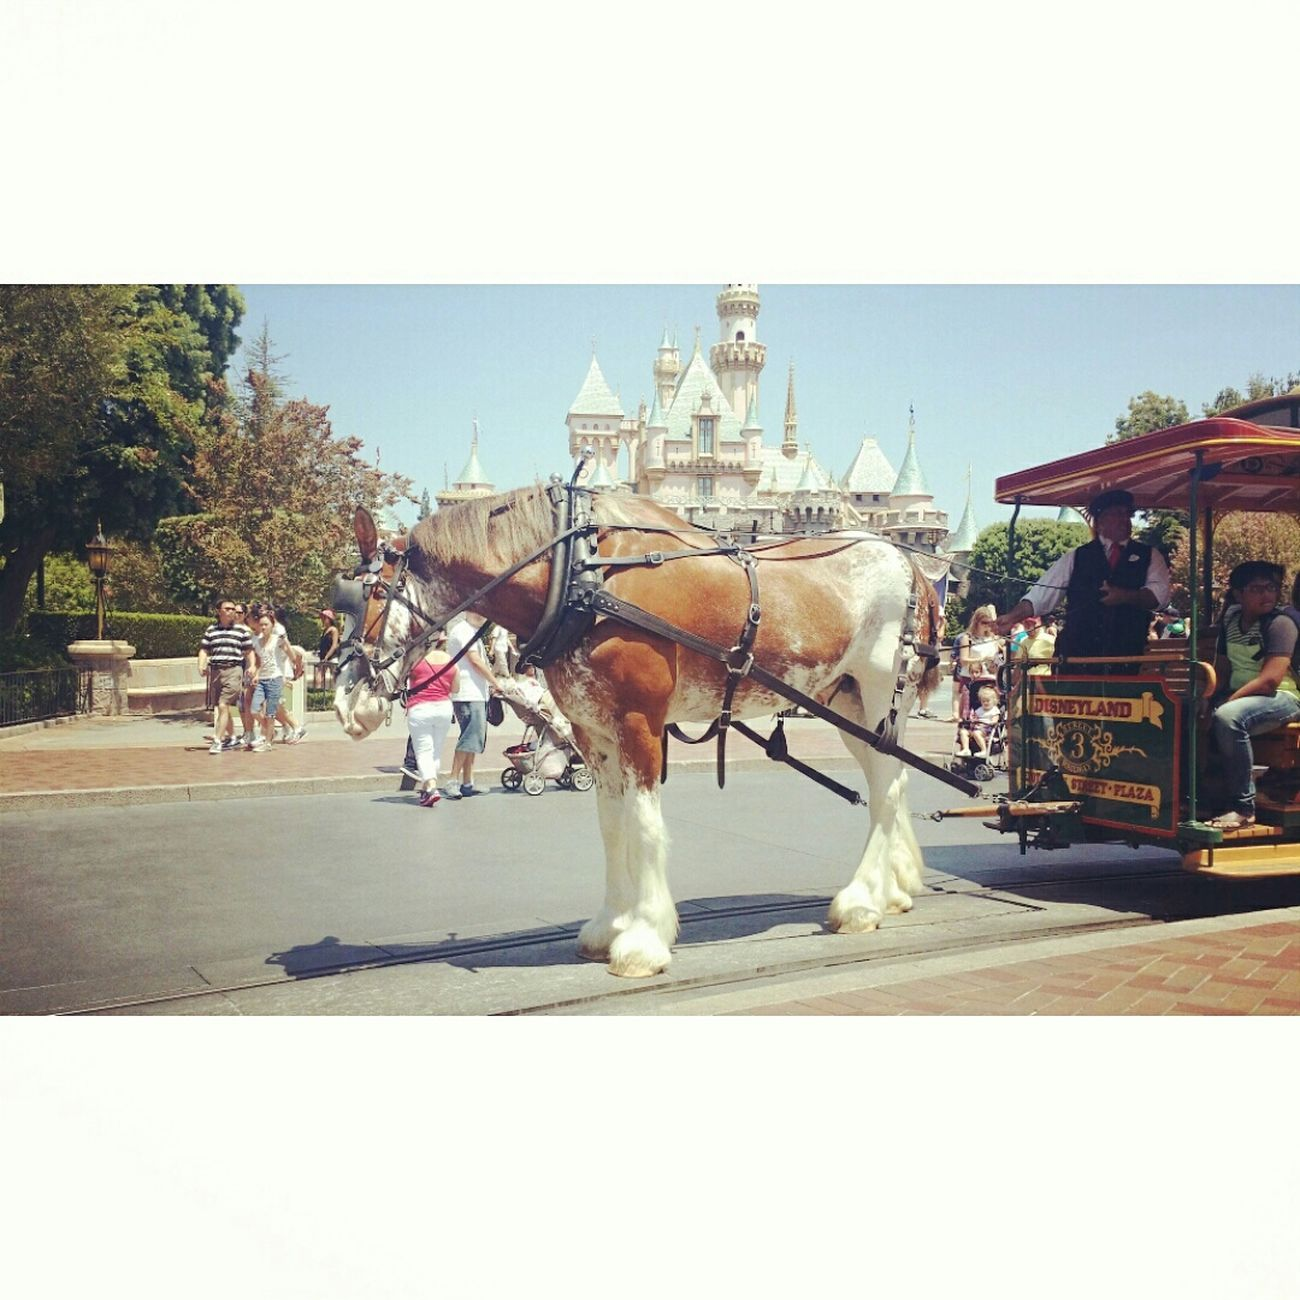 Beautifulhorse Disneyland! <3